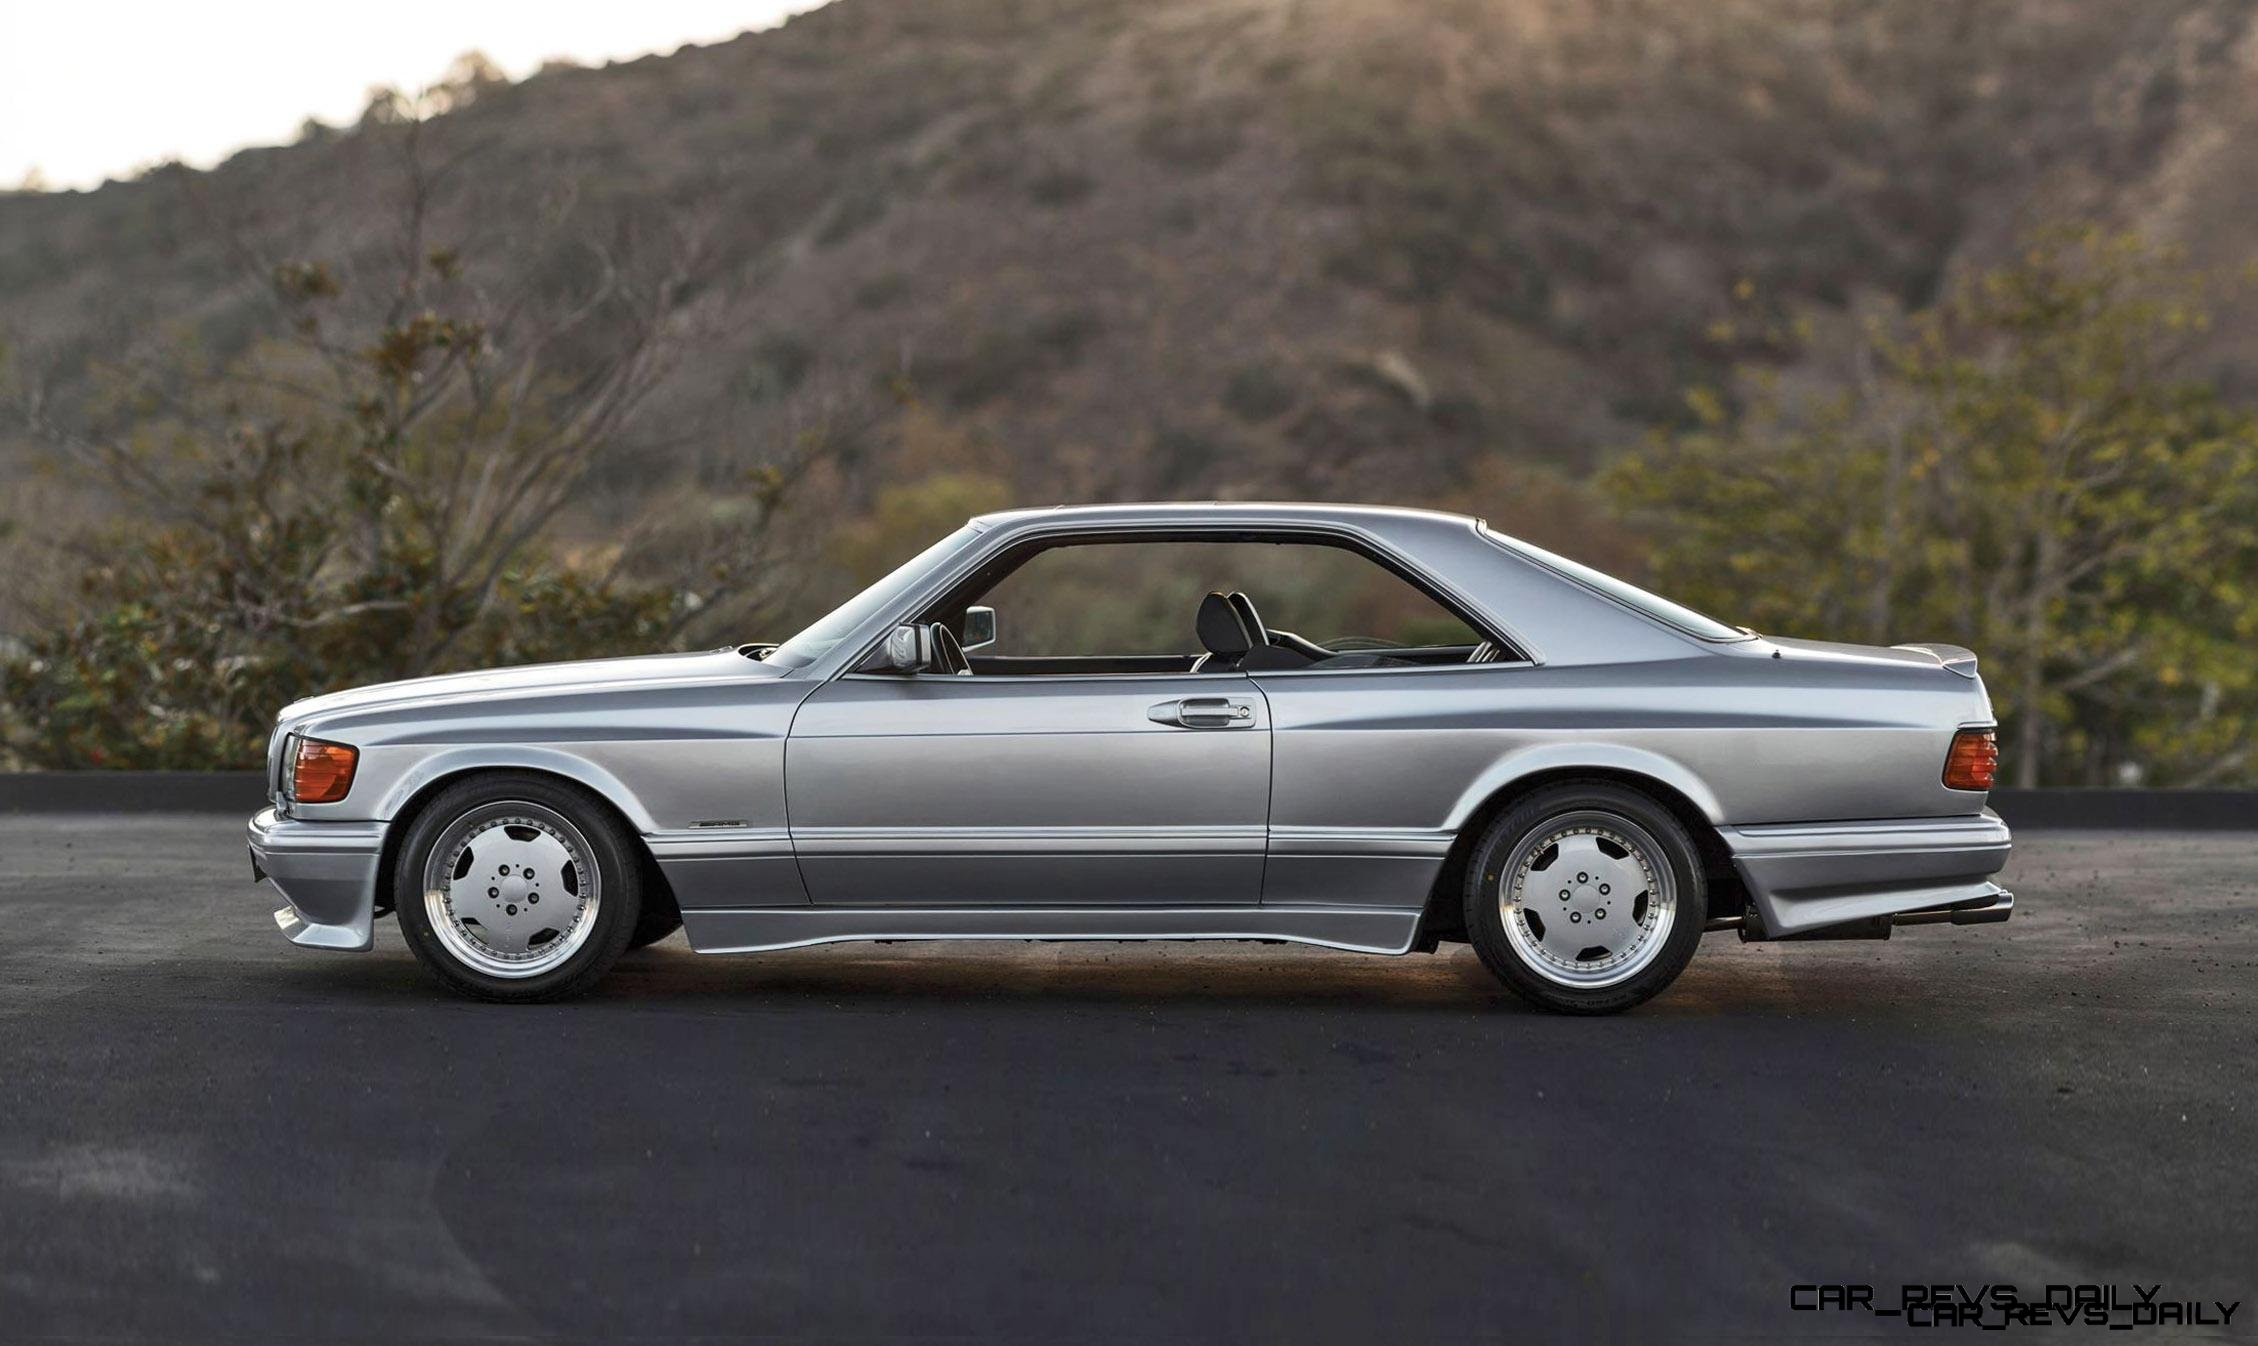 1989 Mercedes Benz 560sec 6 0 Amg Widebody Looks Ready For One Way Back To Affalterbach